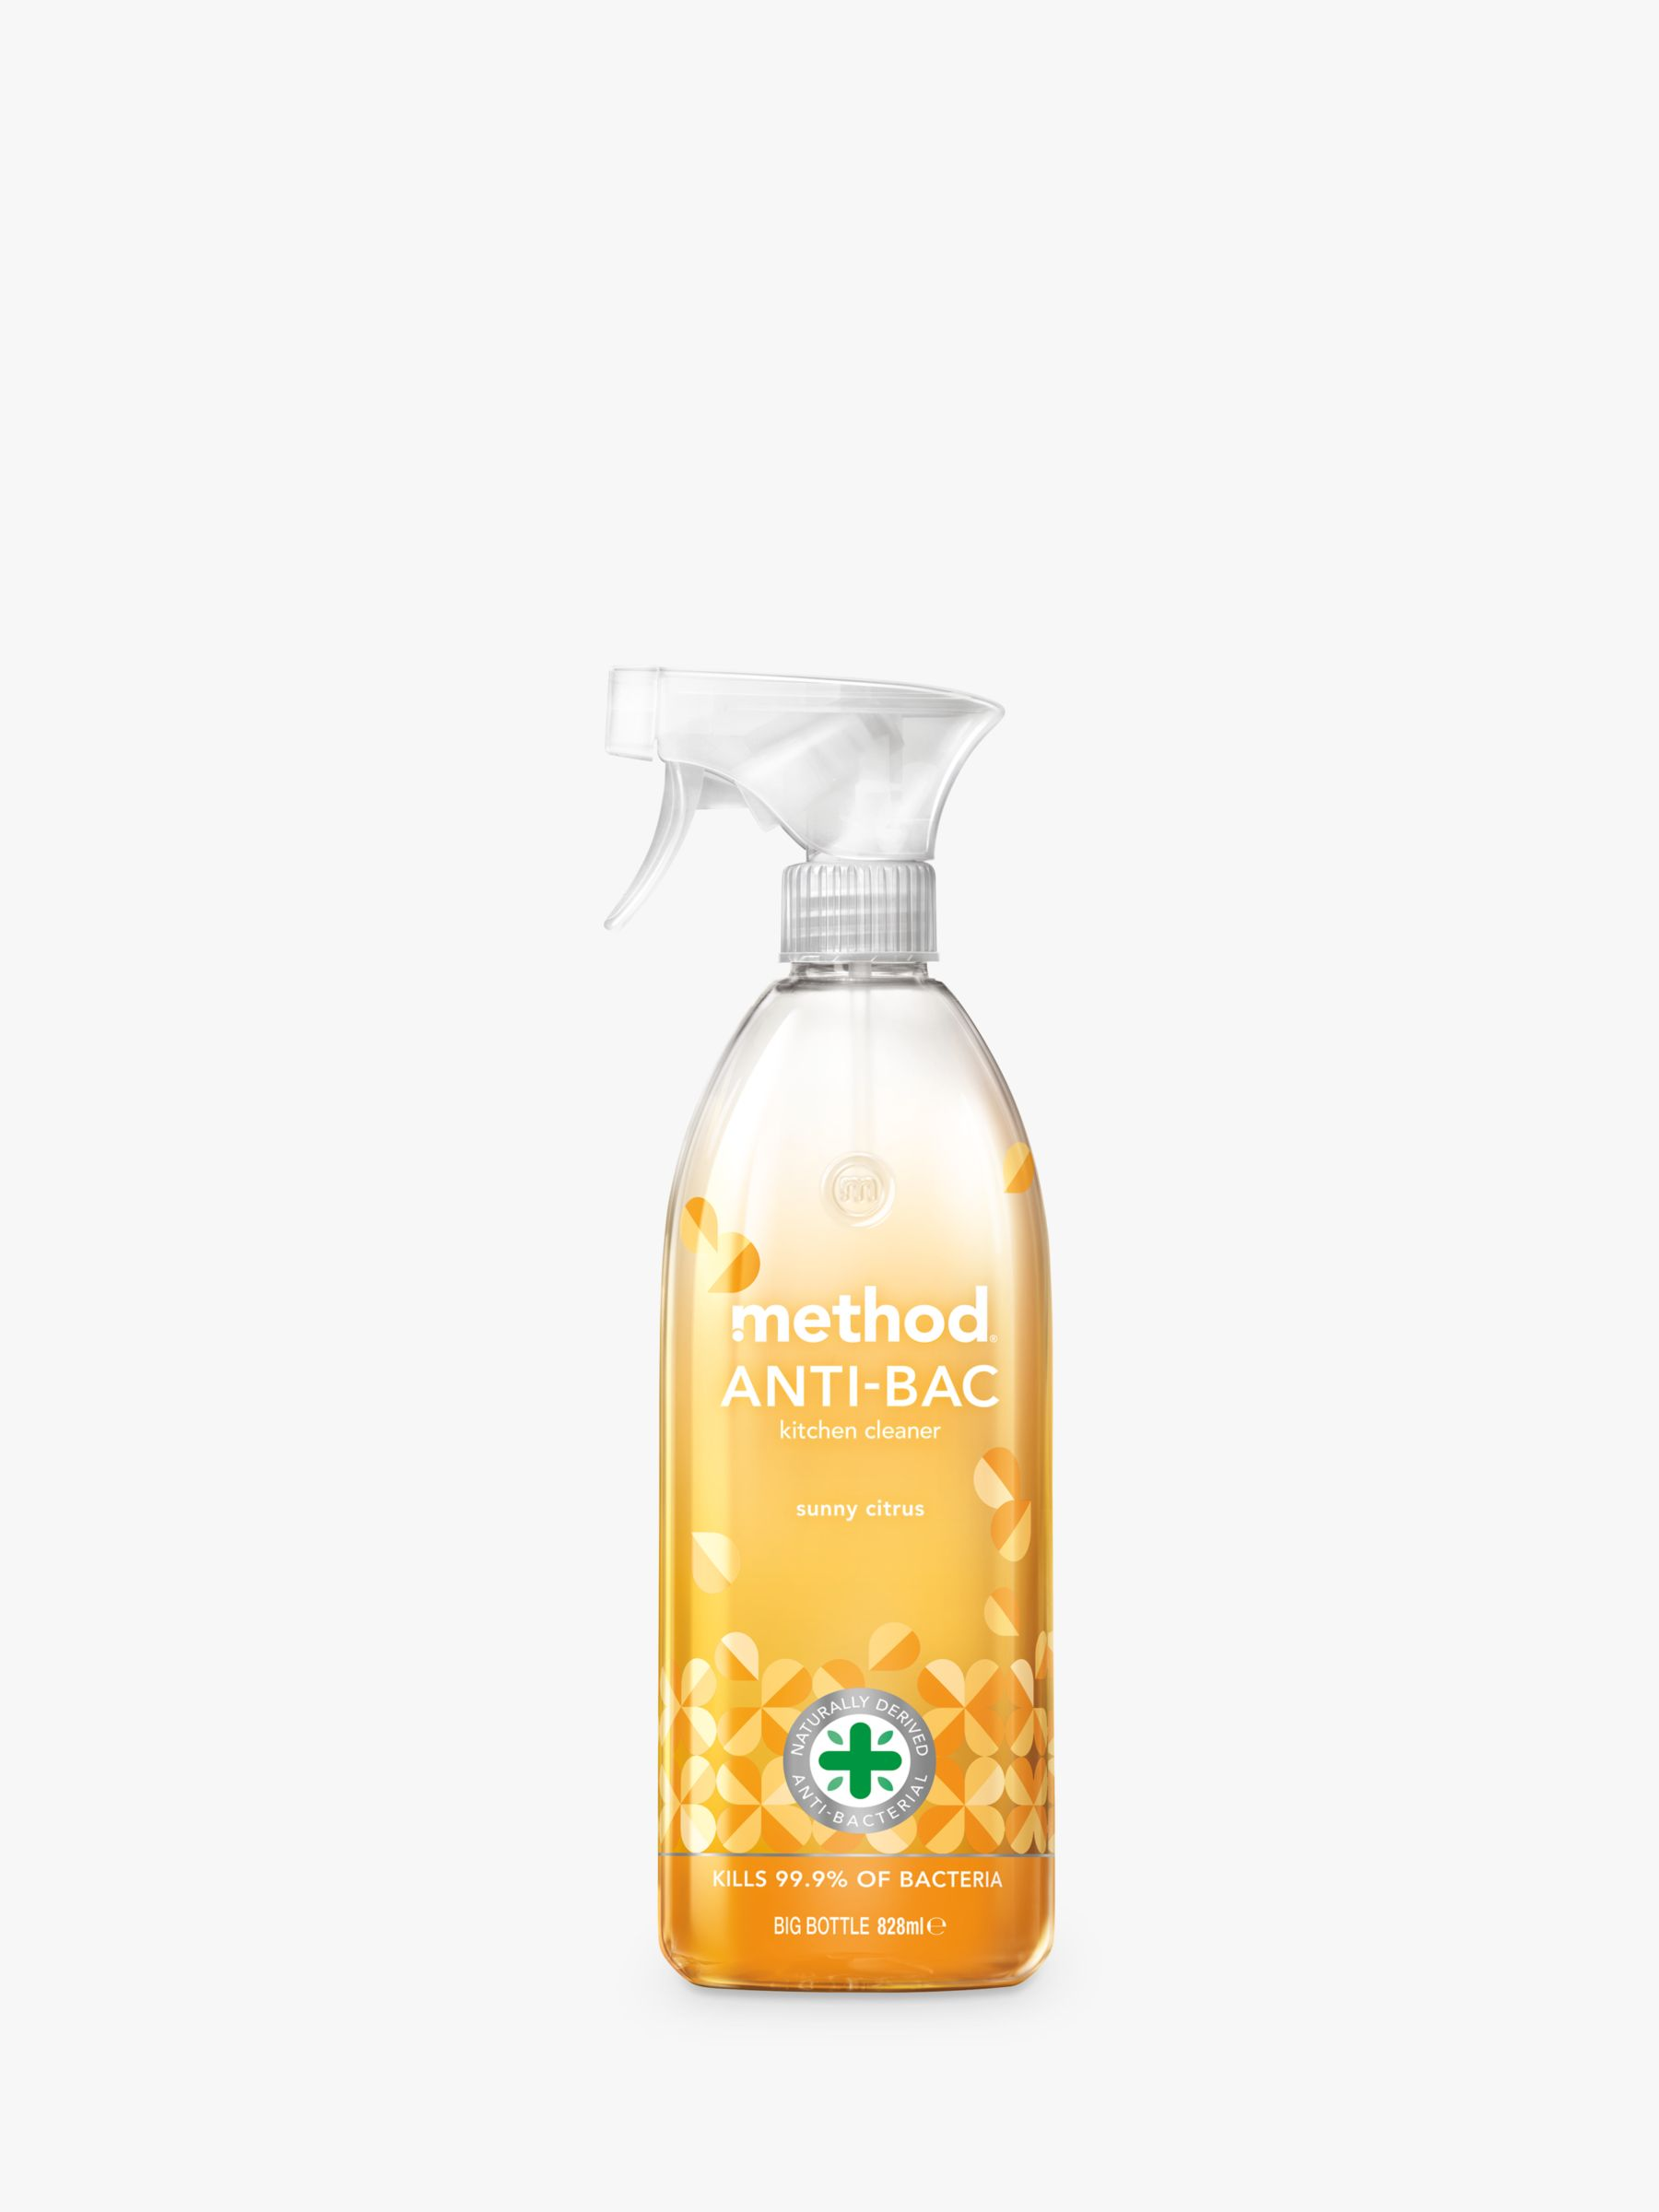 Method Method Anti-Bac Kitchen Cleaner, 828ml